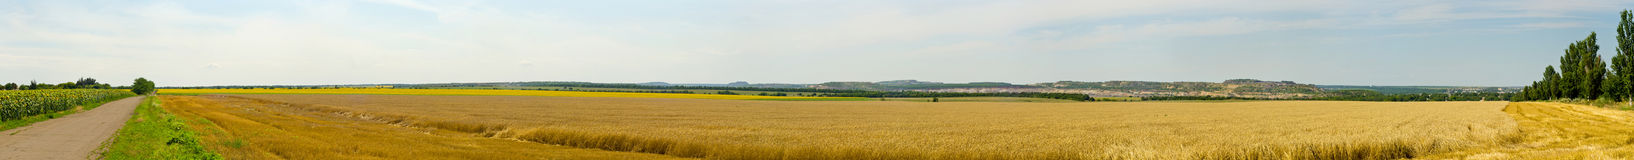 Panorama of the wheat field. Royalty Free Stock Images